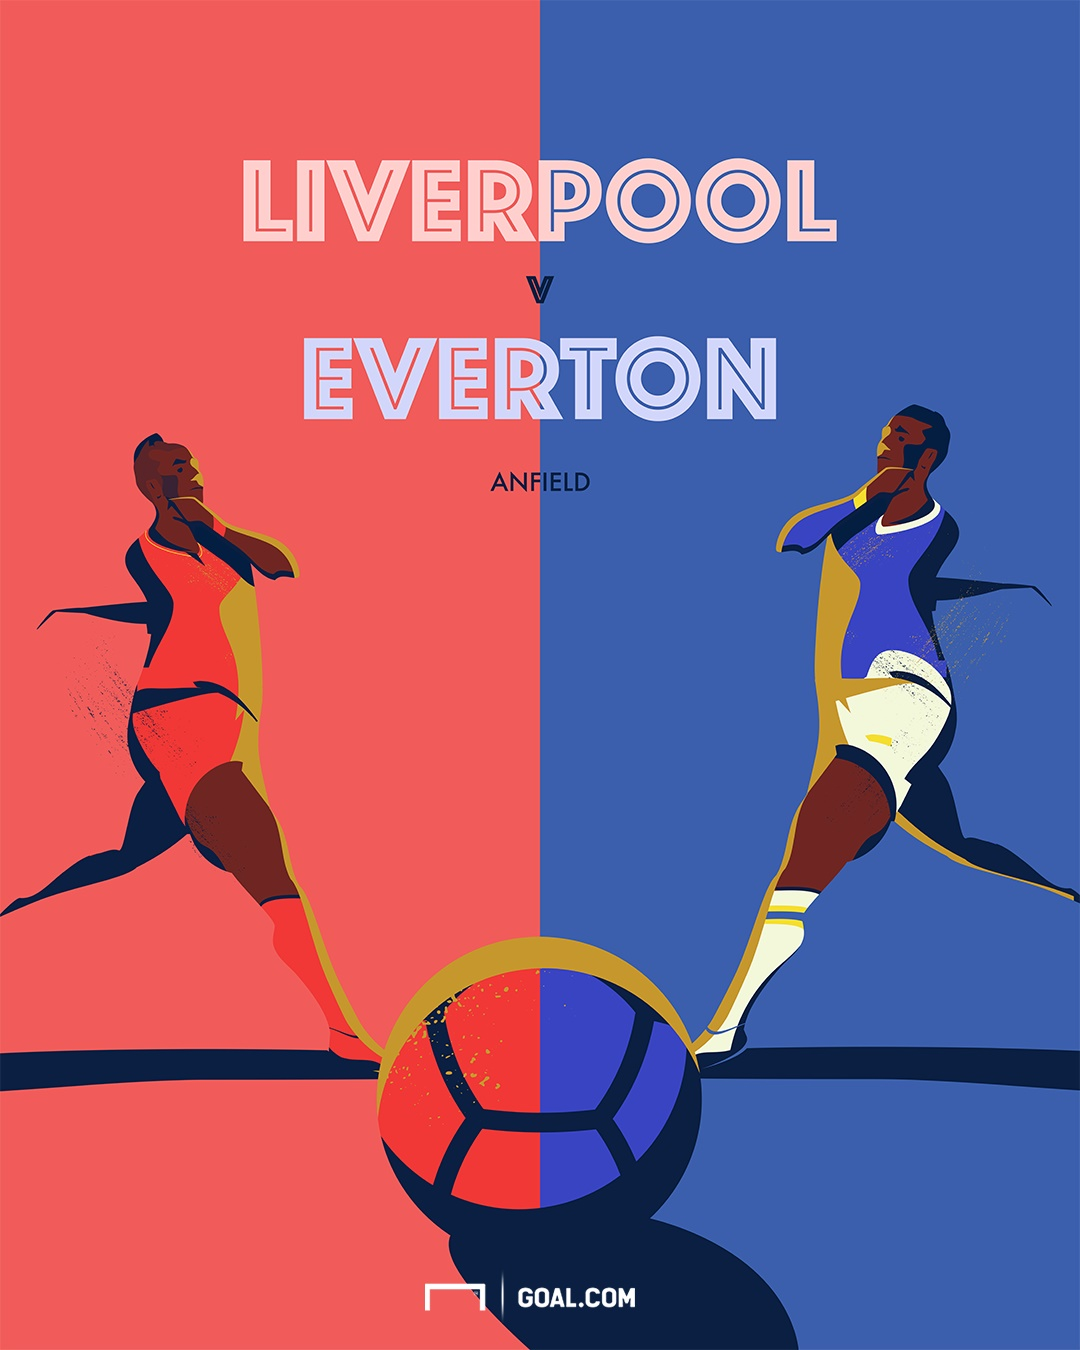 Liverpool Everton GFX